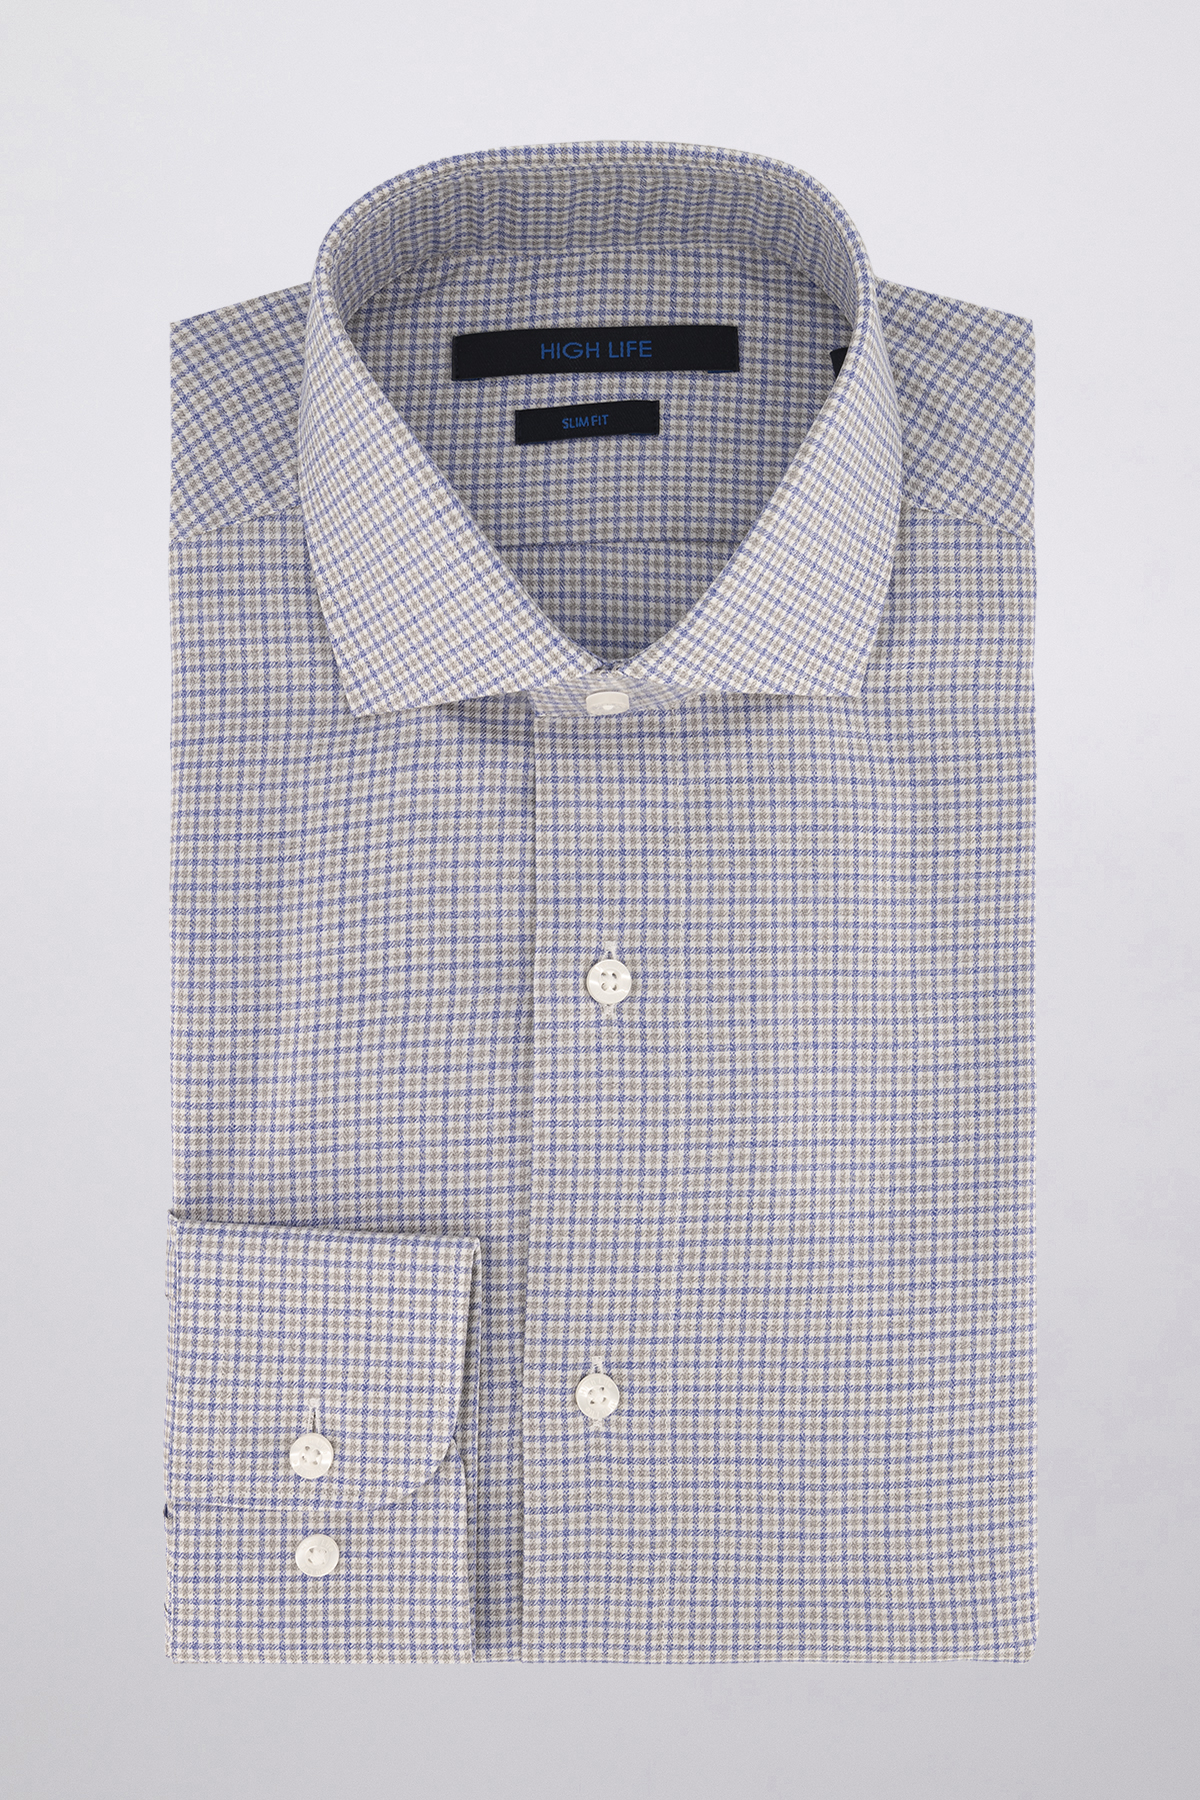 Camisa Vestir marca HIGH LIFE color Gris